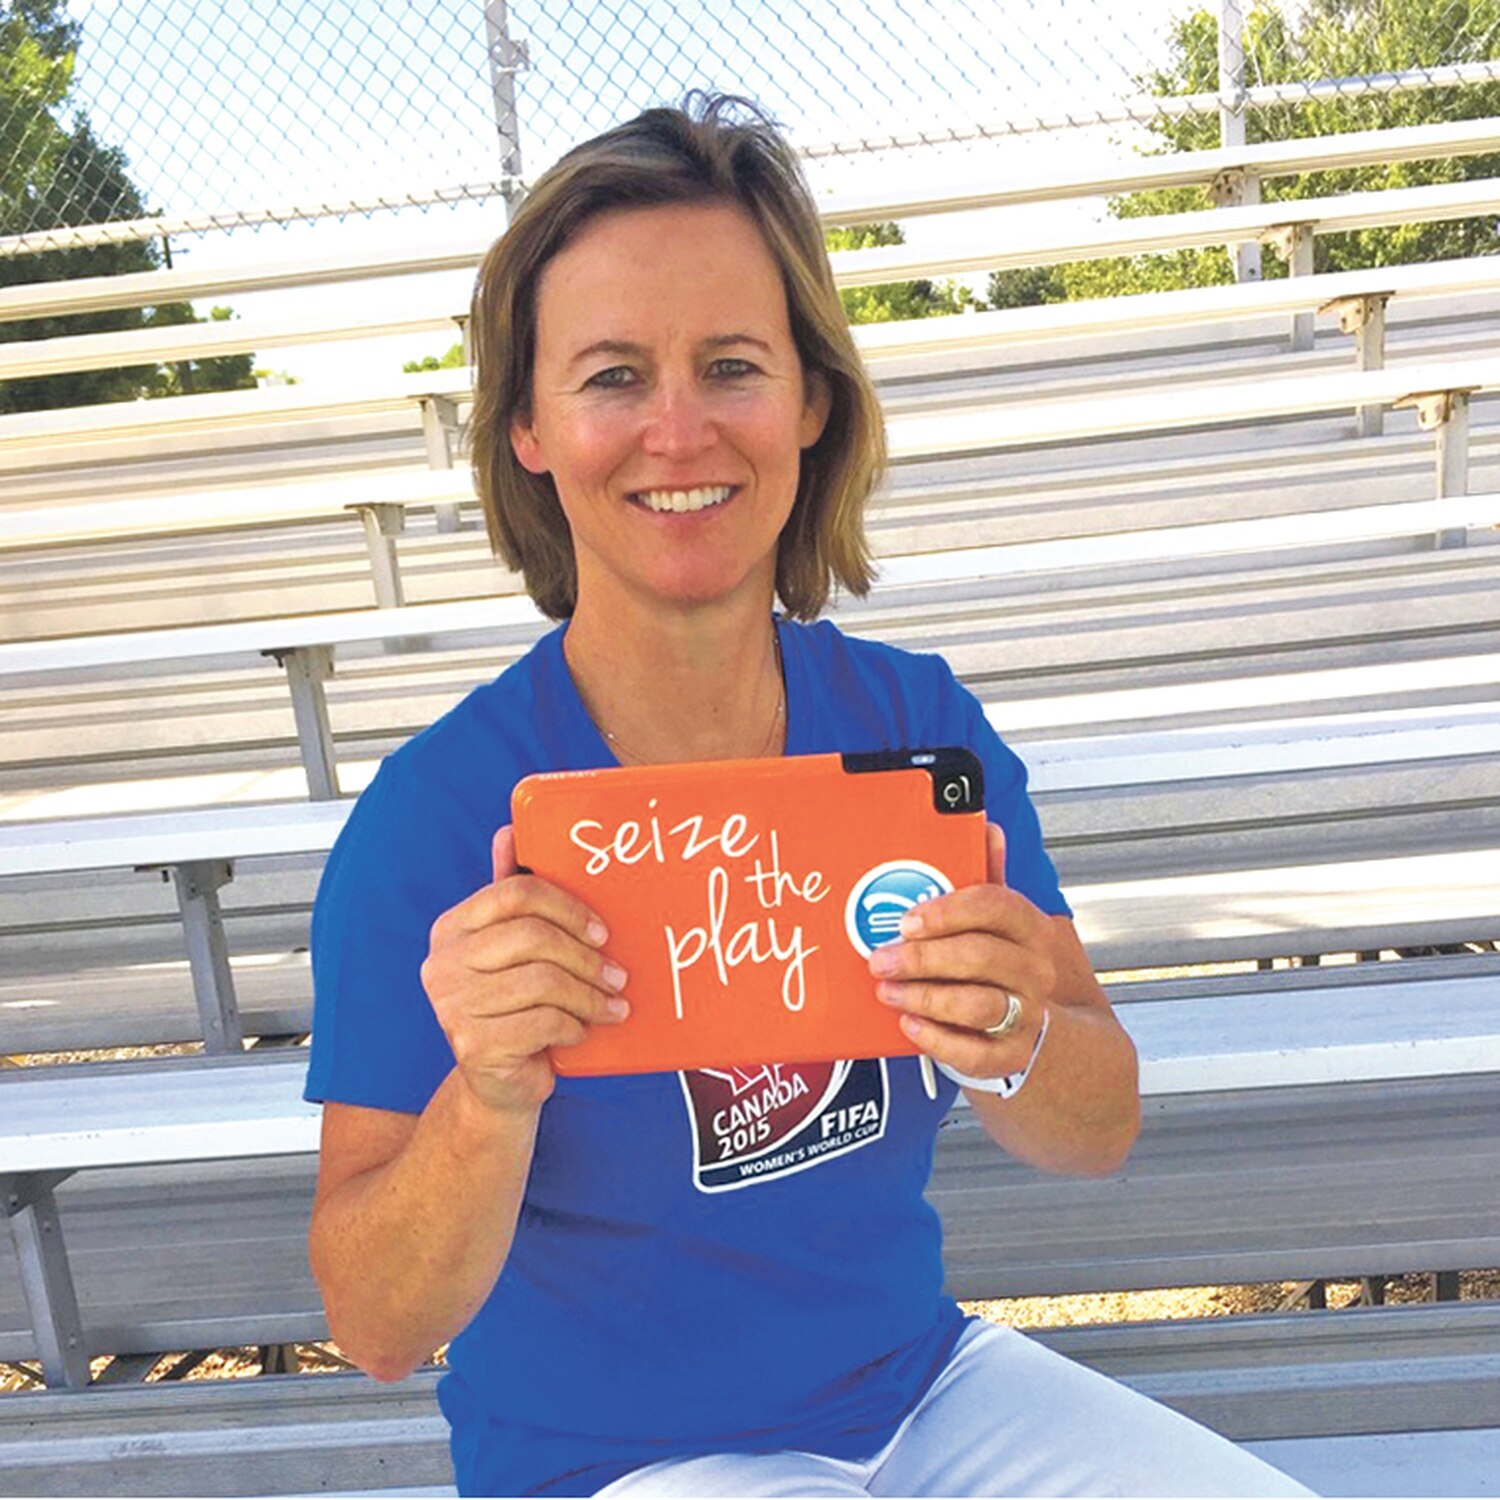 Molly Cernicek's app shares video clips for athletes and compiles highlight reels.